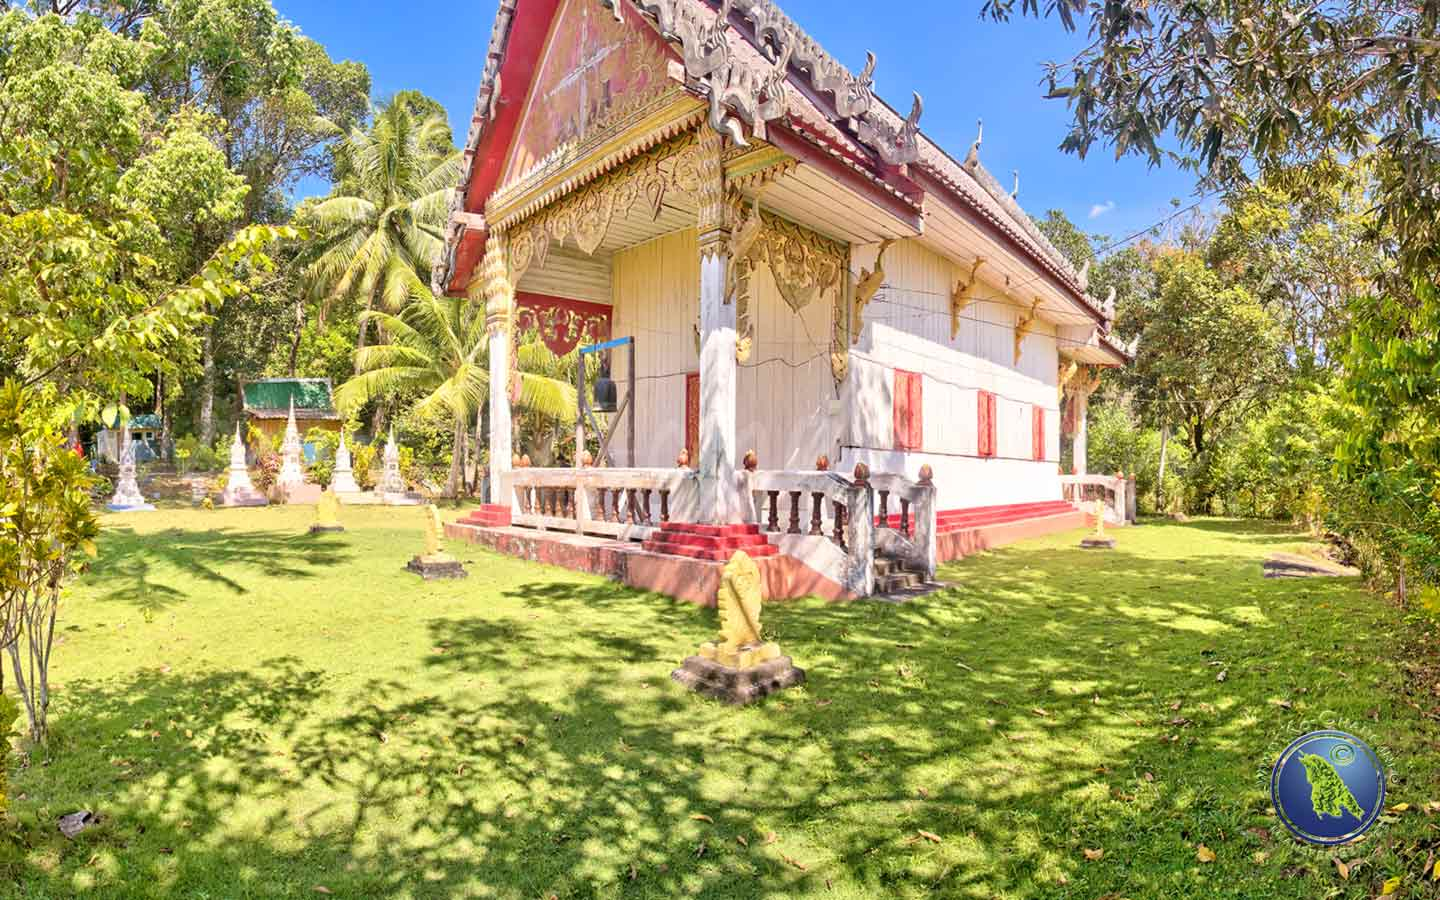 Buddhistischer Tempel in Bang Bao auf Koh Chang in Thailand